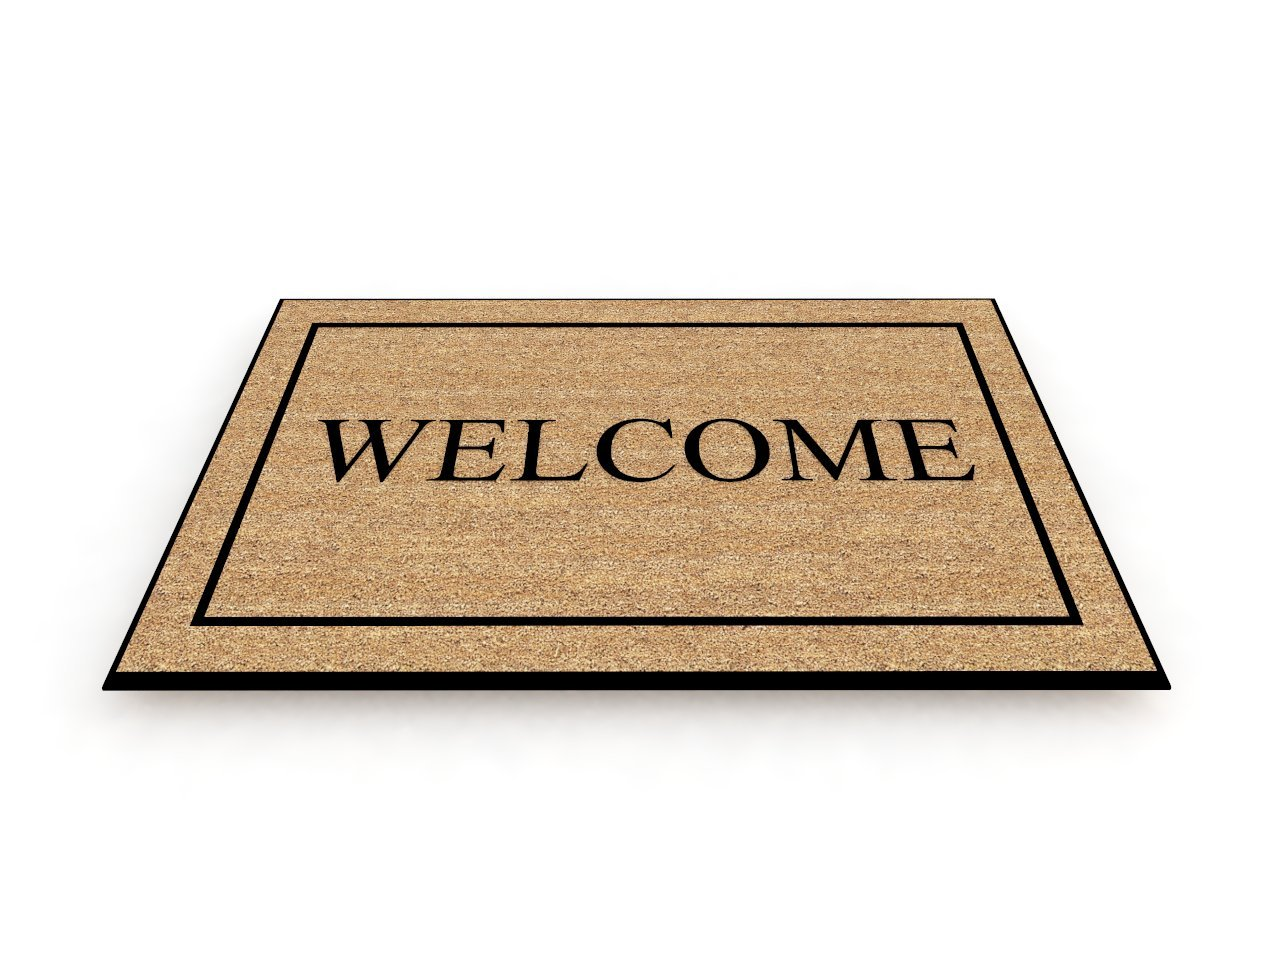 welcome mat clipart free download best welcome mat clipart on rh clipartmag com  clip art welcome mat picture